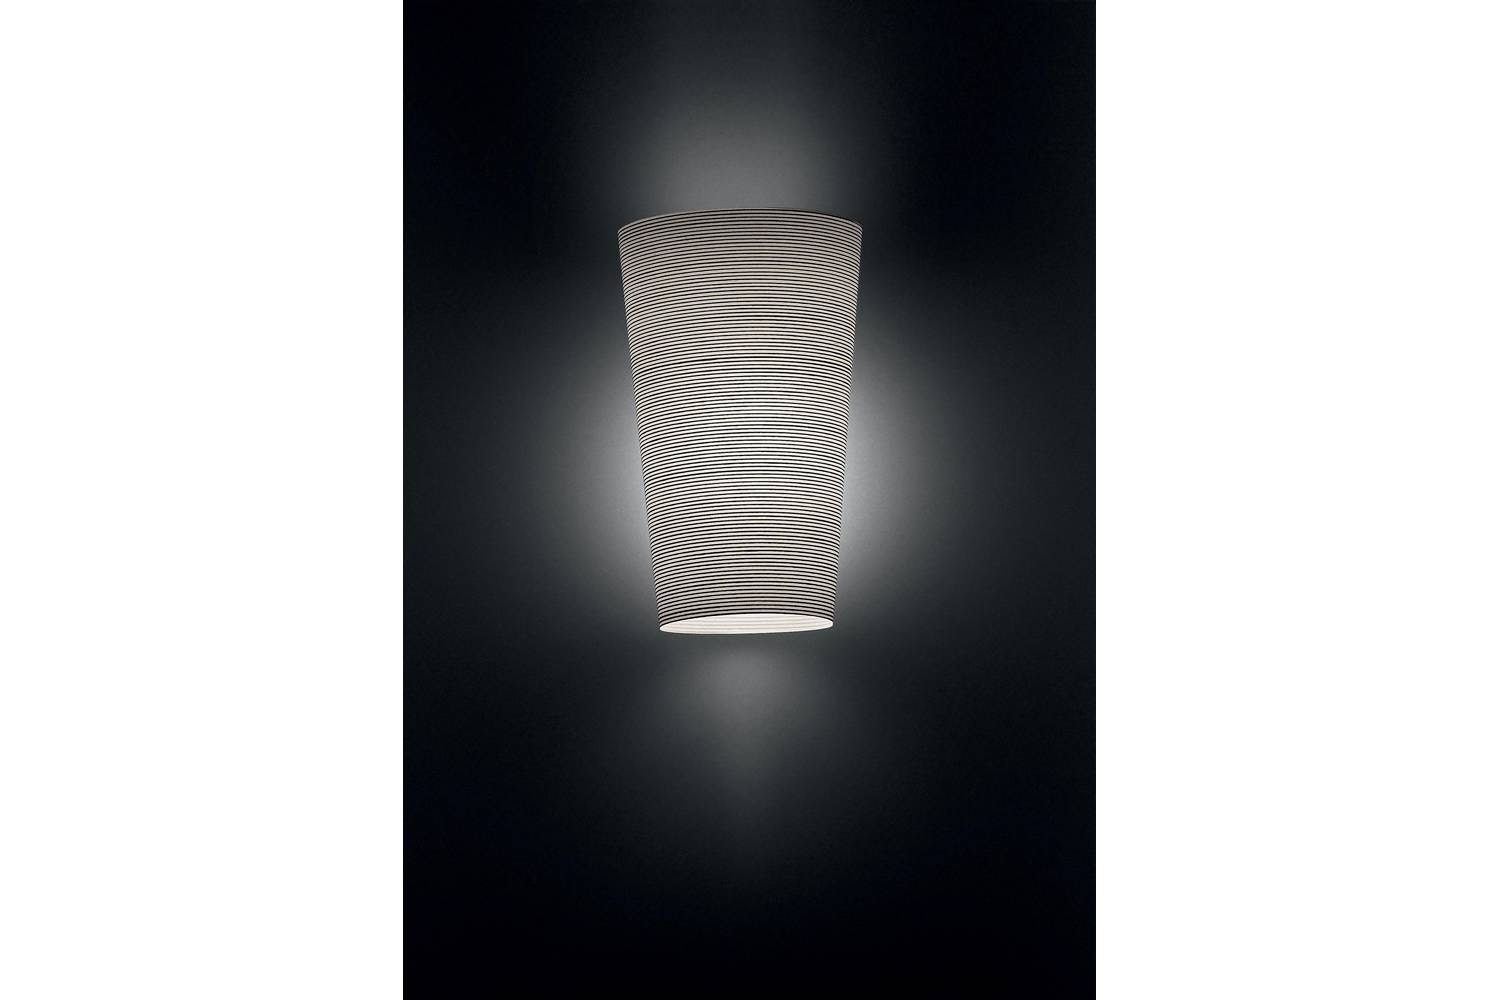 Kite Wall Lamp by Marc Sadler for Foscarini